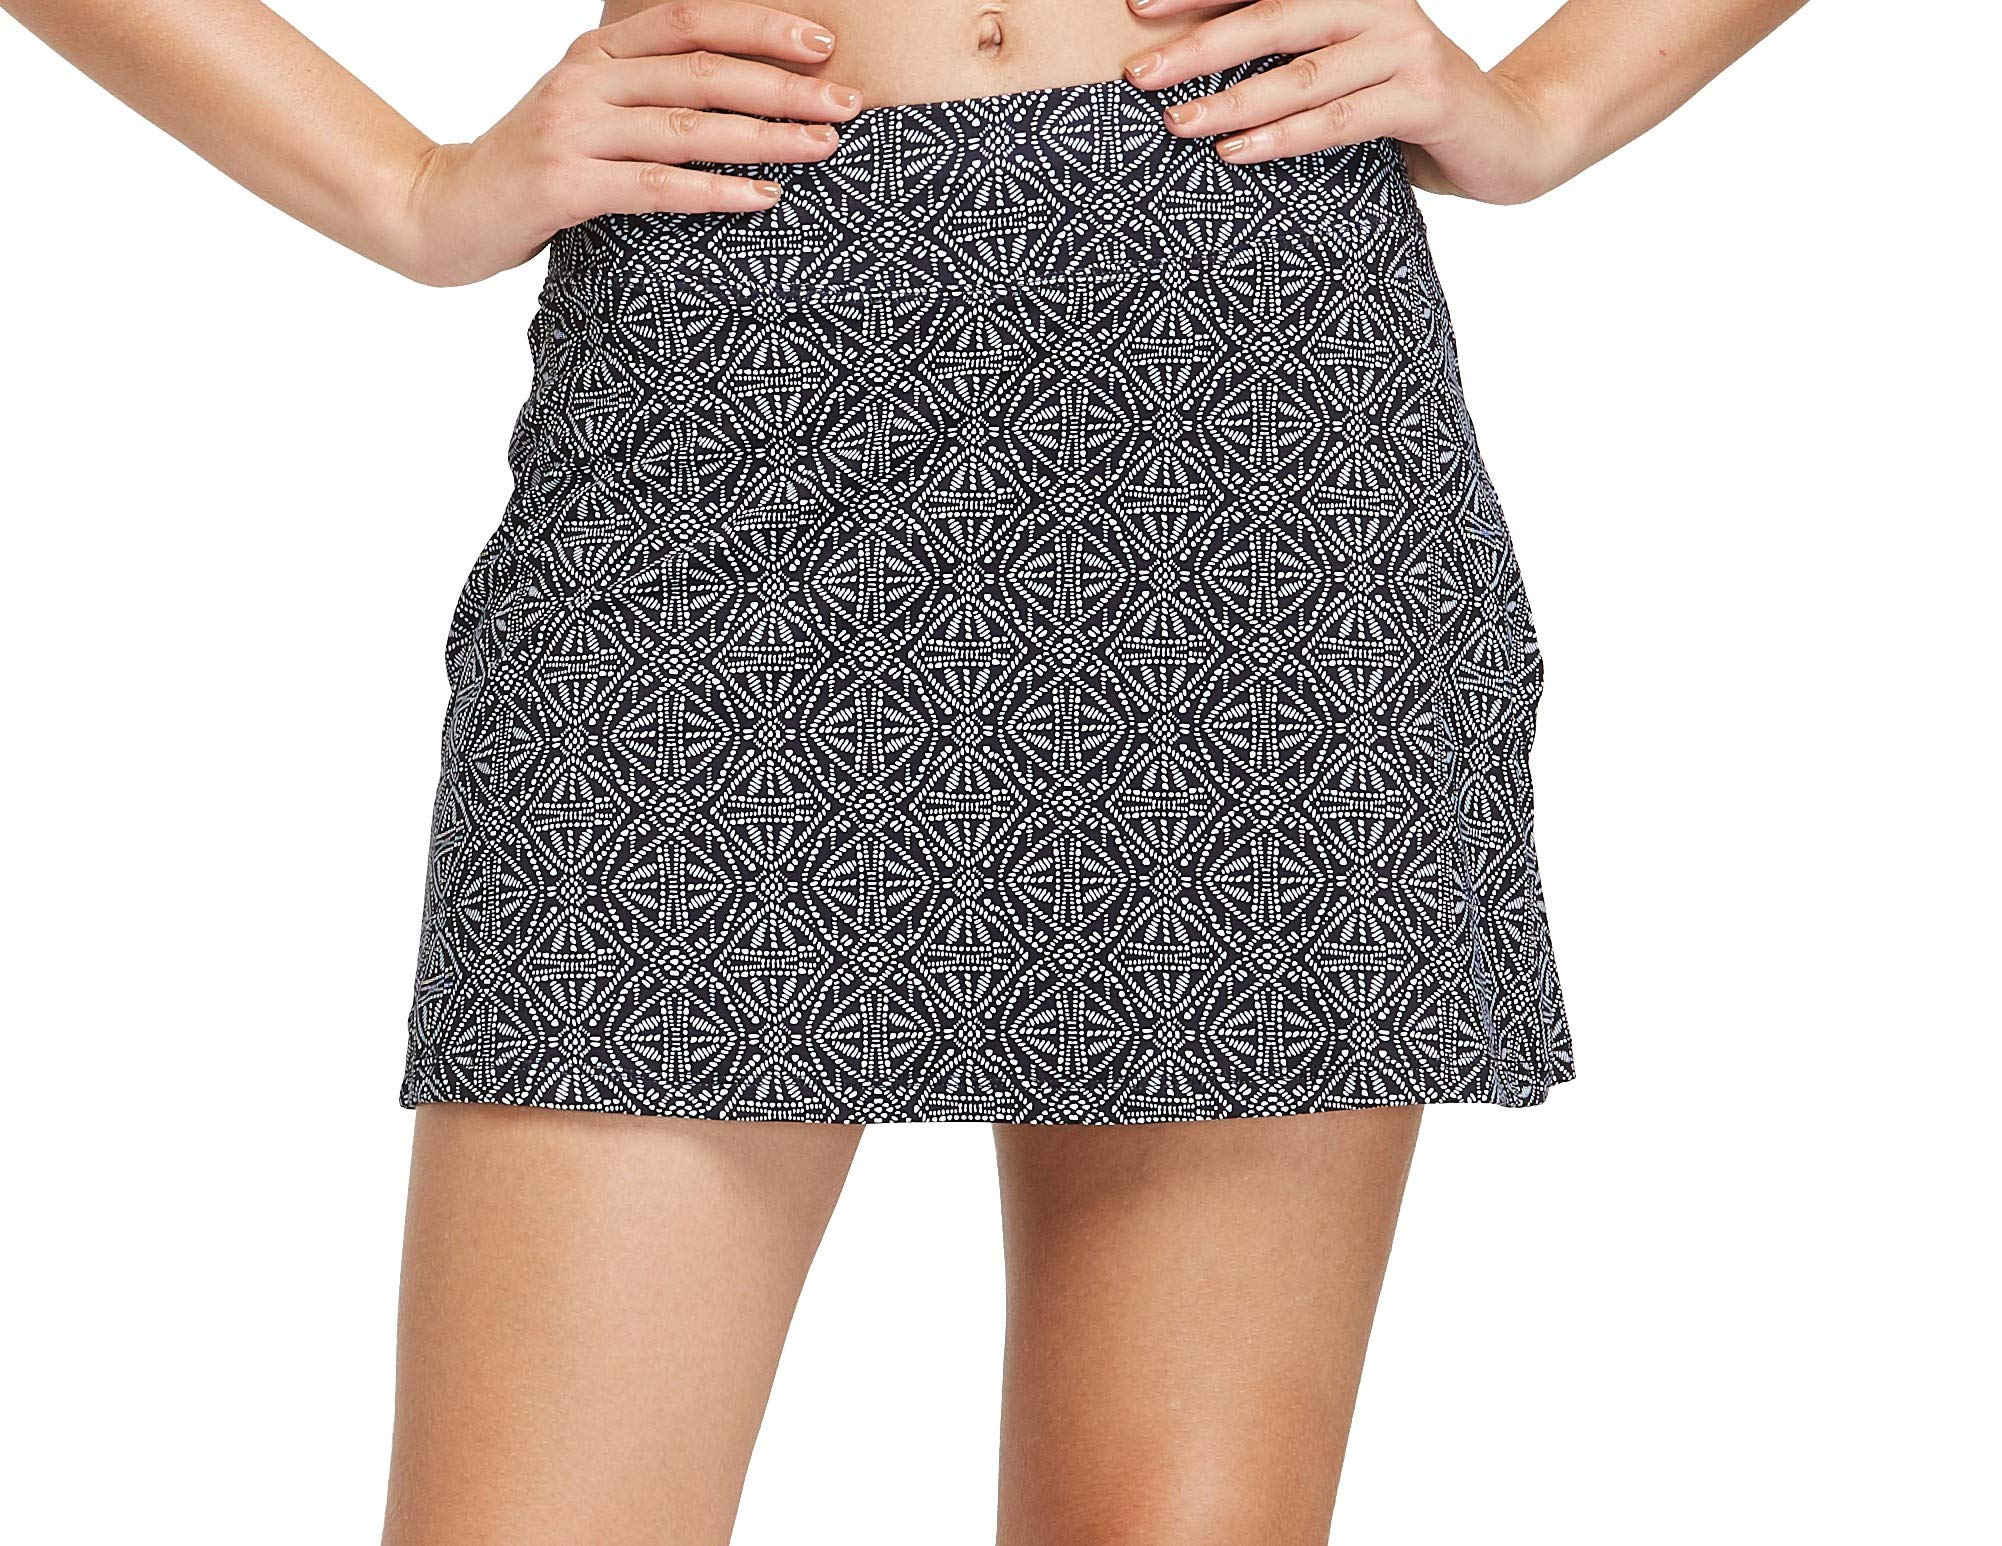 Cityoung Women's Casual Pleated Golf Skirt with Underneath Shorts Running Skorts xs p_hzz Black Pearl by Cityoung